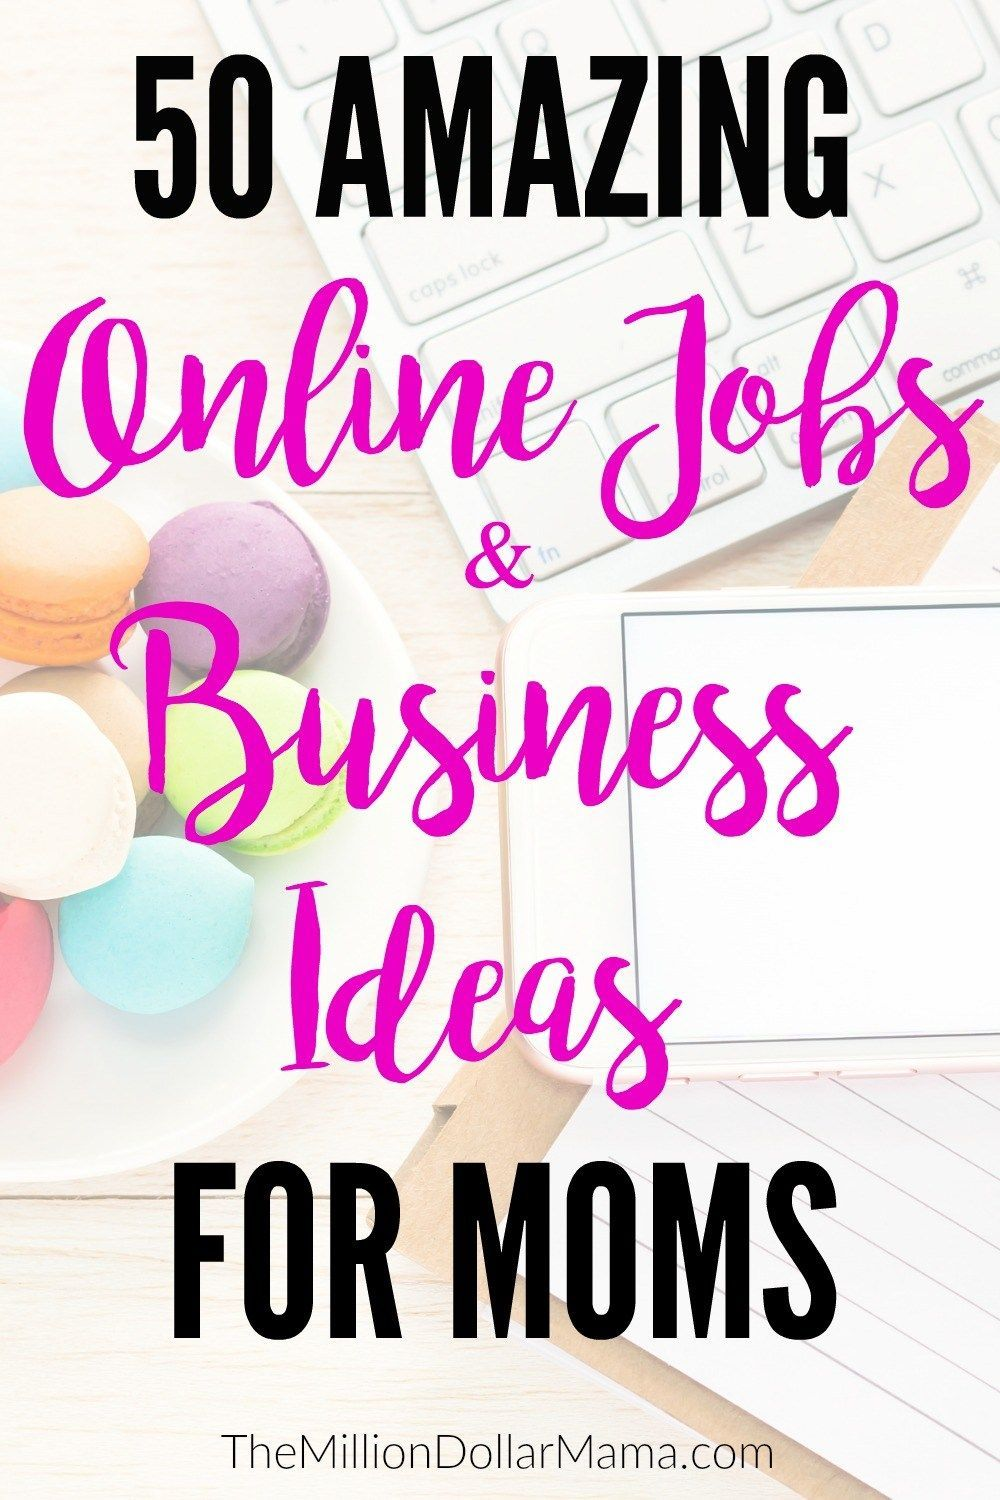 Online Jobs and Work From Home Ideas - Over 50 great ideas for moms ...